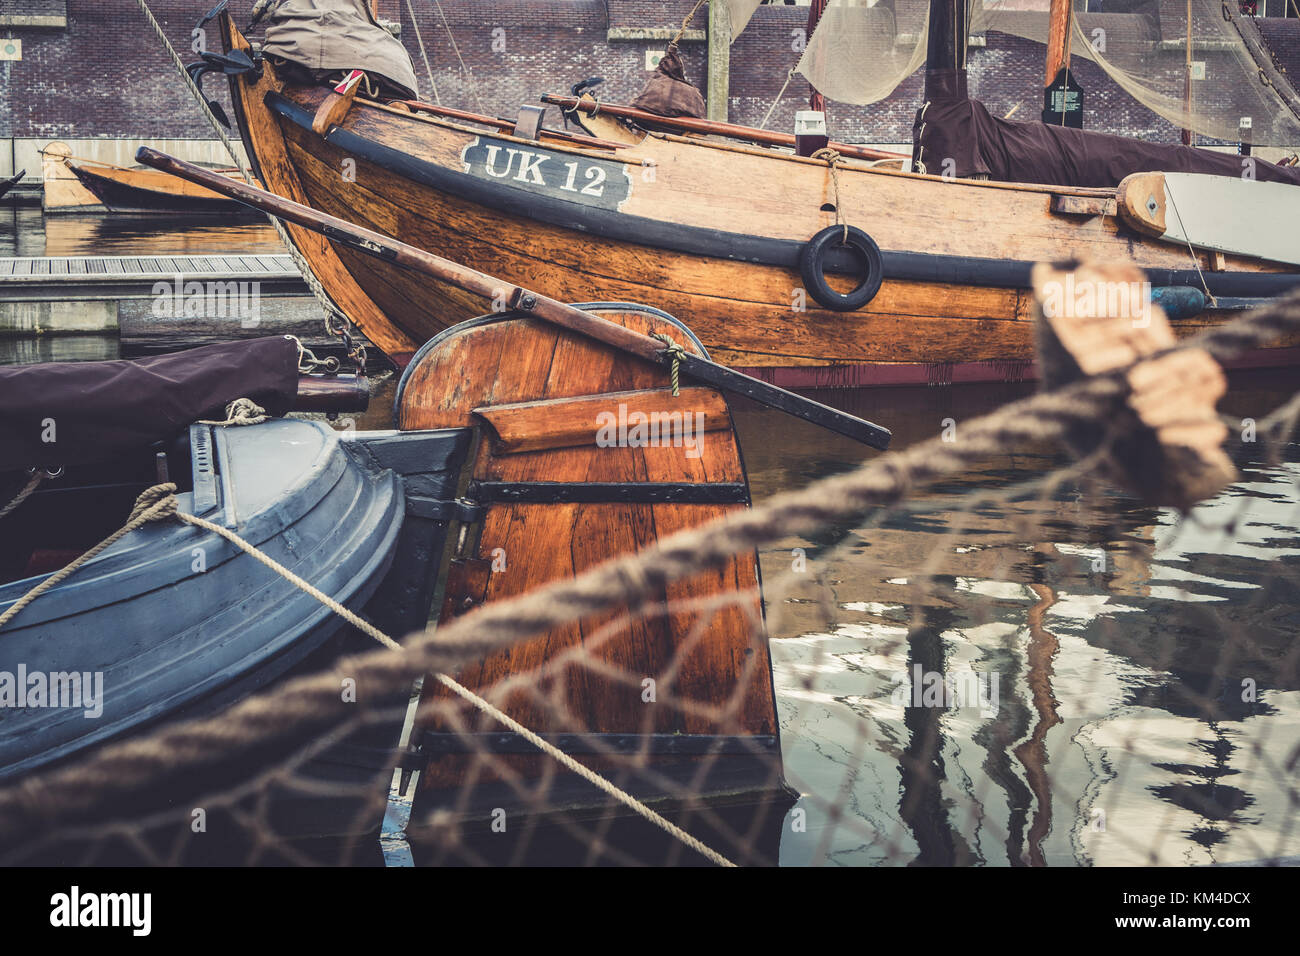 Vecchio fishingboats nel Buitenhaven a Kampen, Olanda, durante la International Hanseatic Days 2017. Immagini Stock